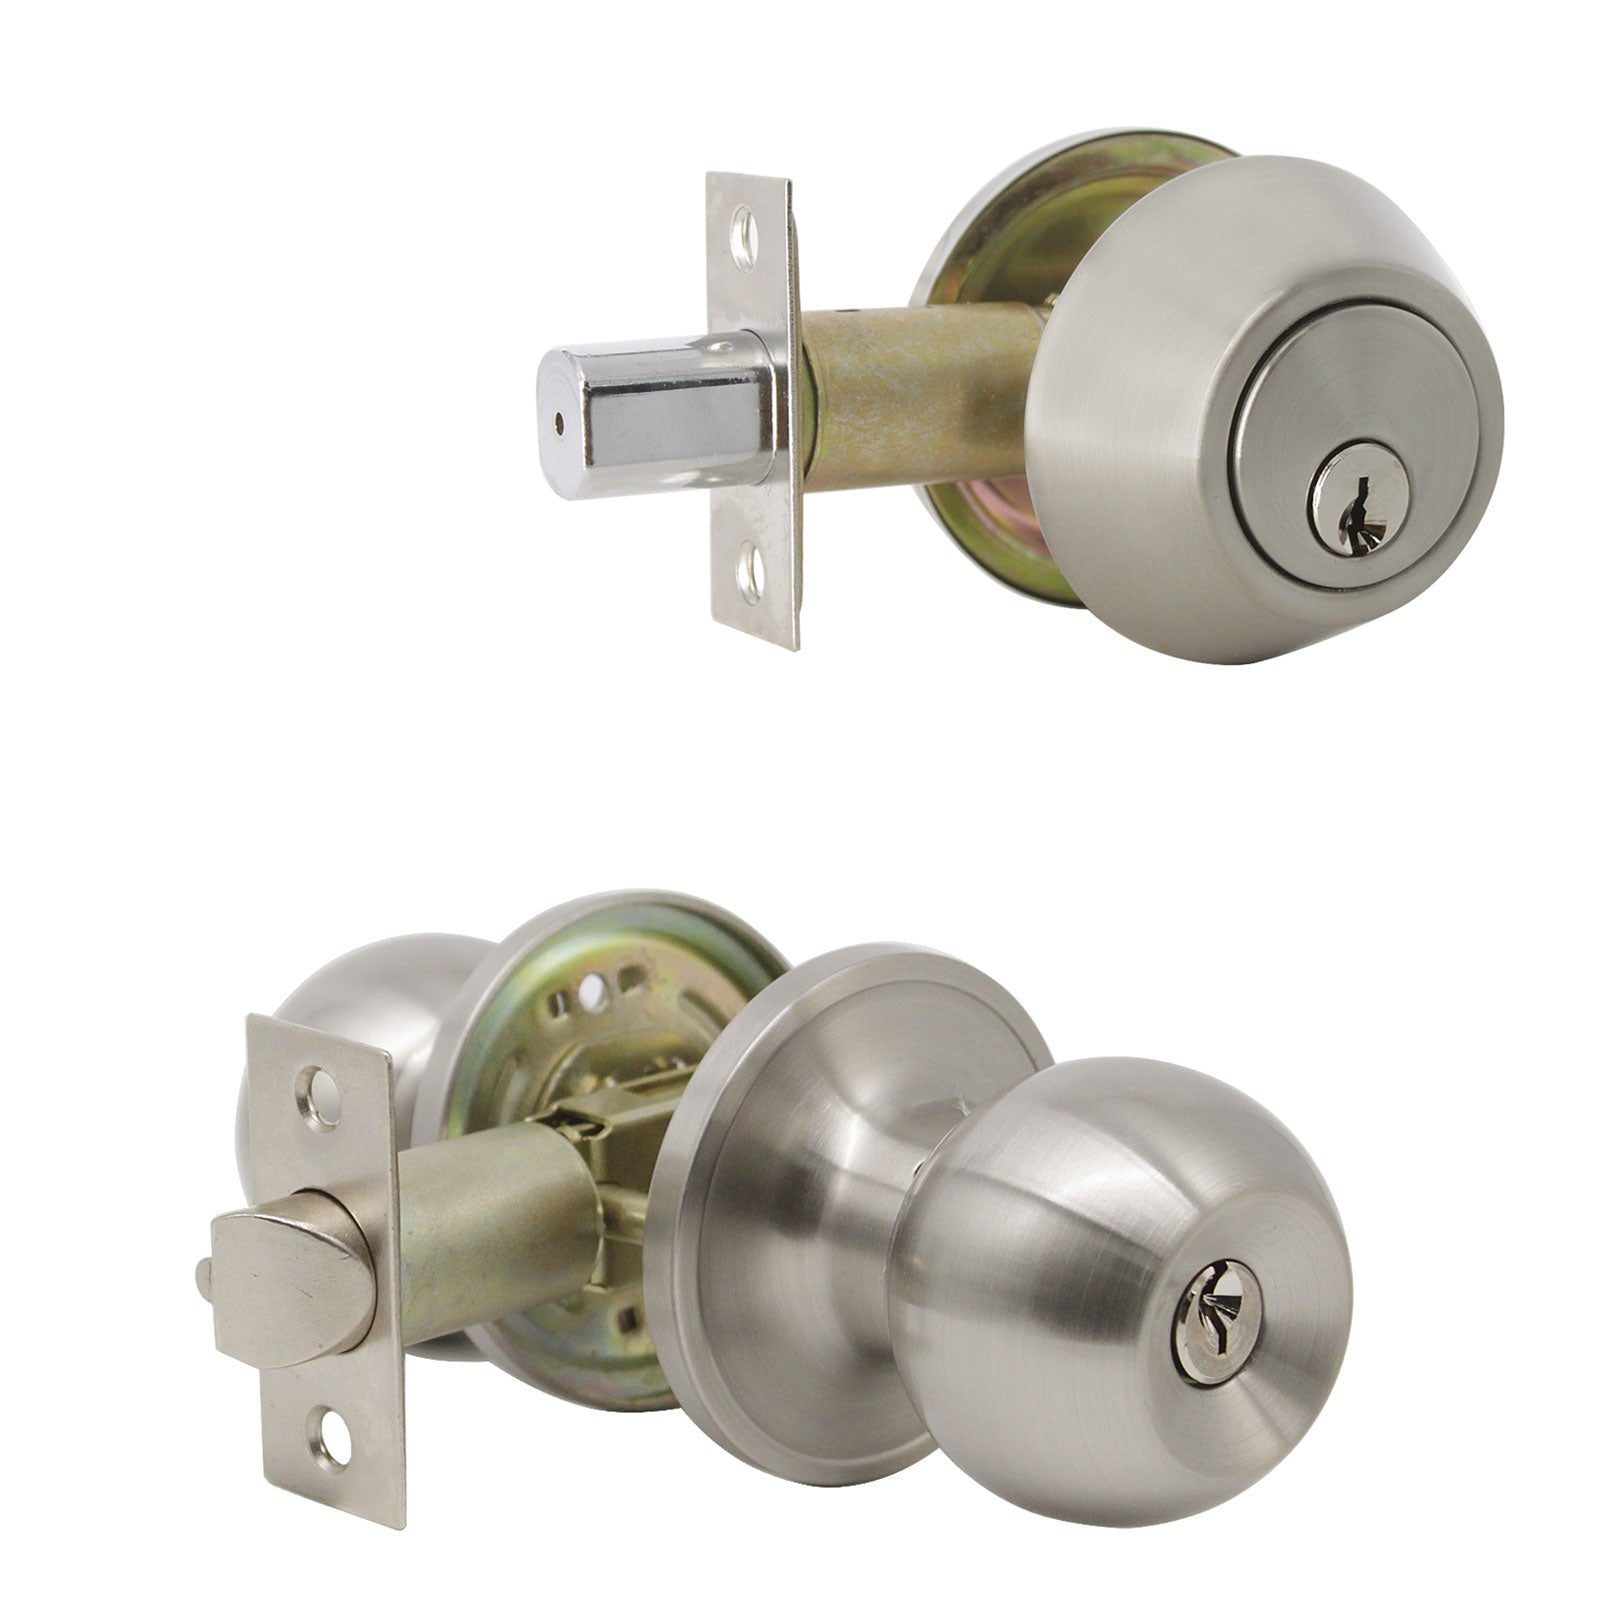 Round Ball Door Knob Lock with Double Cylinder Deadbolt Entry Keyed Lockset Satin Nickel Finish- Keyed Alike DL607ET-102SN